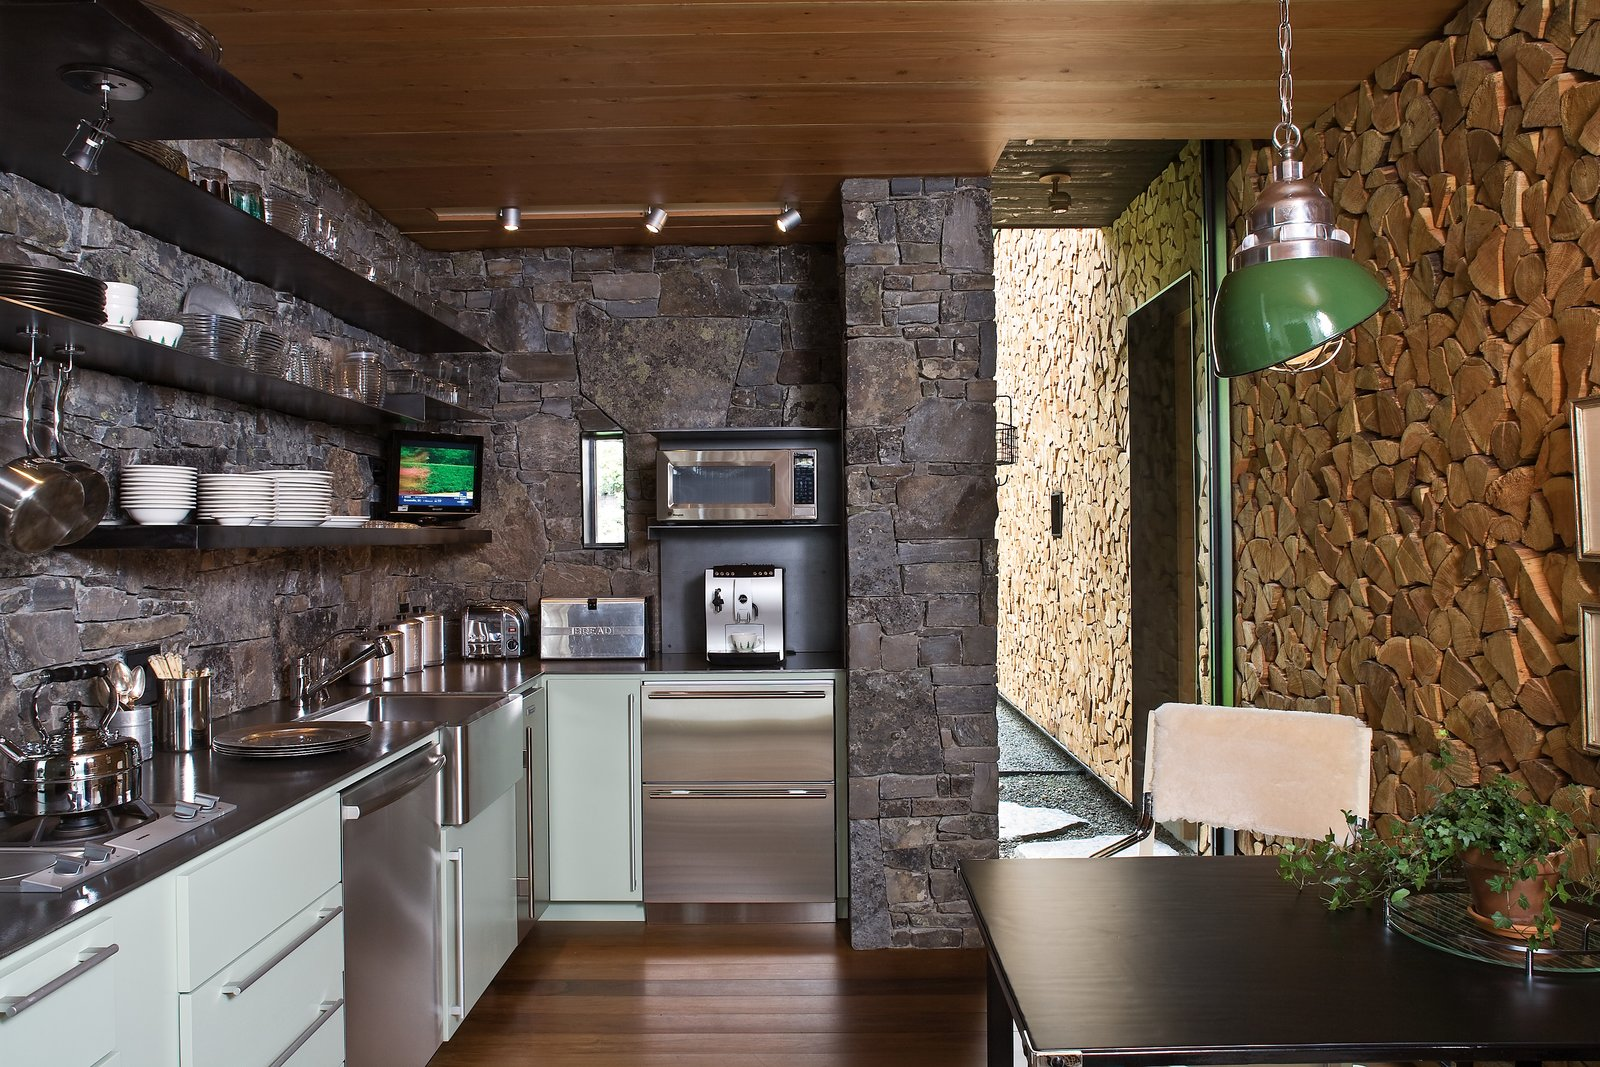 Kitchen, Track, Refrigerator, Stone Slab, Medium Hardwood, Pendant, Open, Microwave, Metal, Colorful, Undermount, and Dishwasher Natural materials such as concrete, stone, and wood give the architecture a rugged honesty that allows it to harmonize with the pine trees and stone outcroppings outdoors.  Best Kitchen Open Microwave Photos from Stacked-Wood Walls Tie This Eco-Friendly Camp to the Montana Landscape